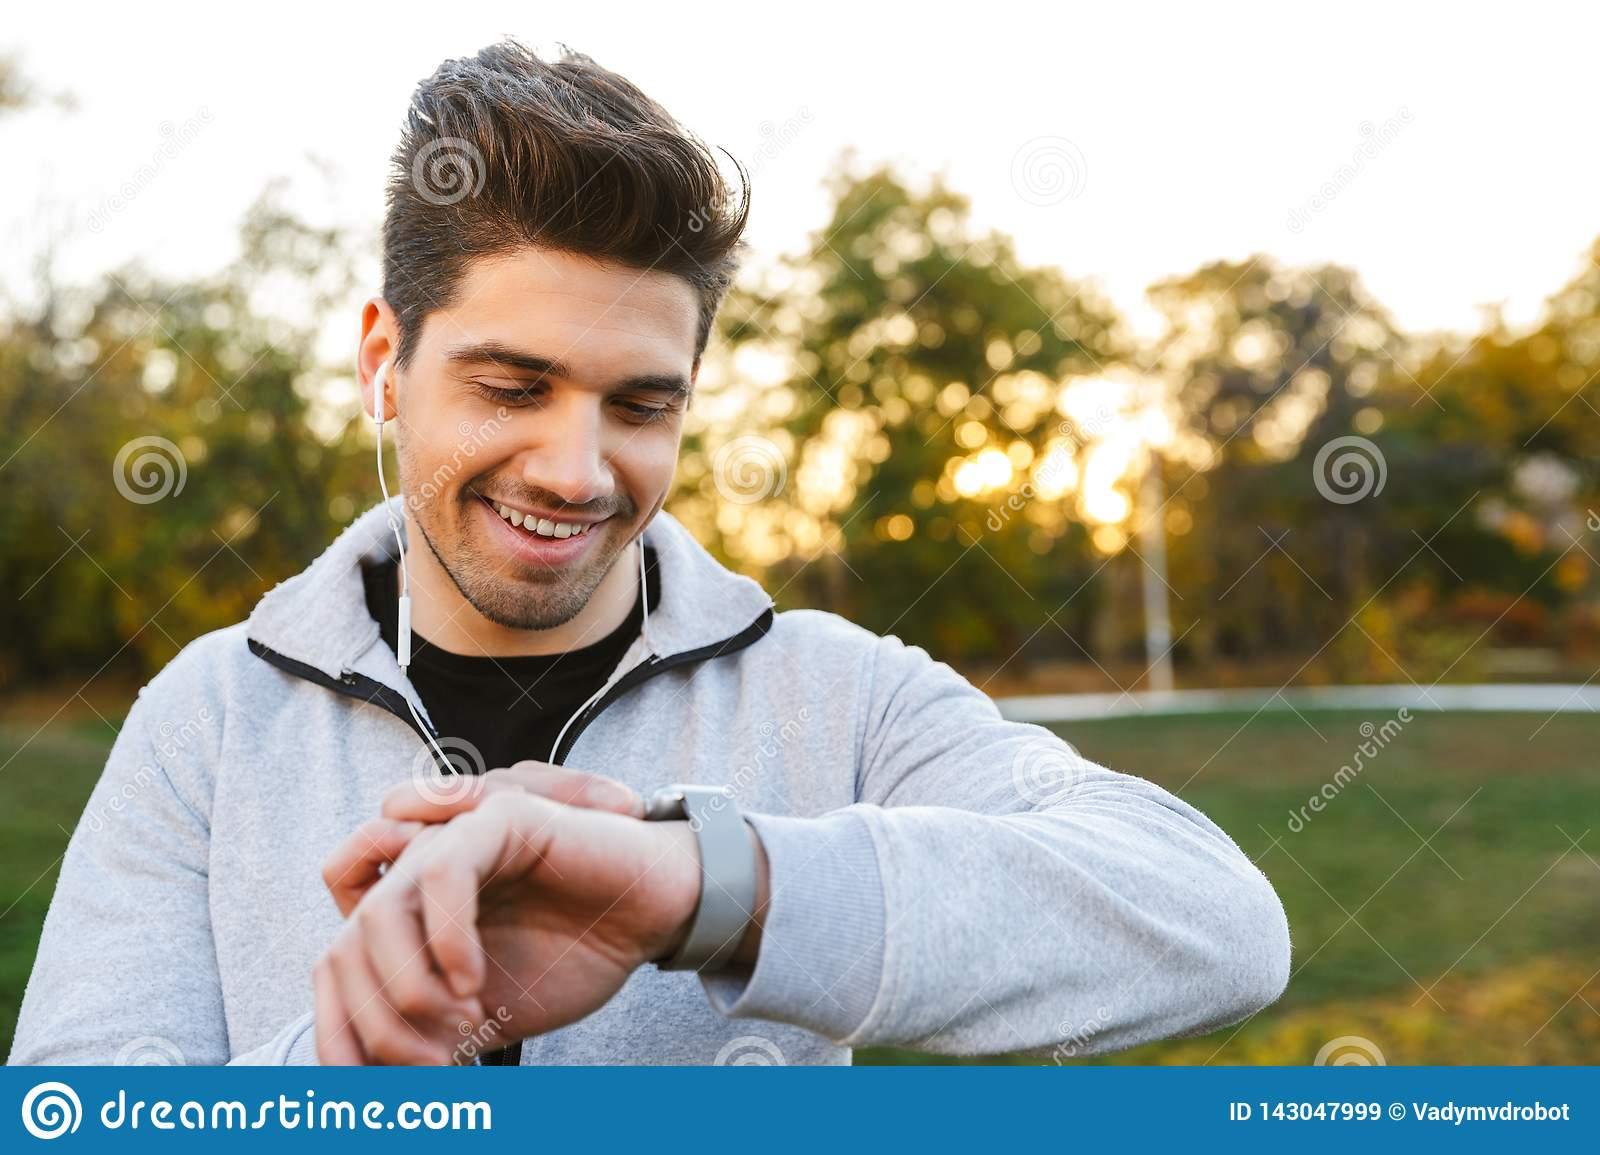 Handsome young sportsman outdoors in park listening music with earphones looking at watch